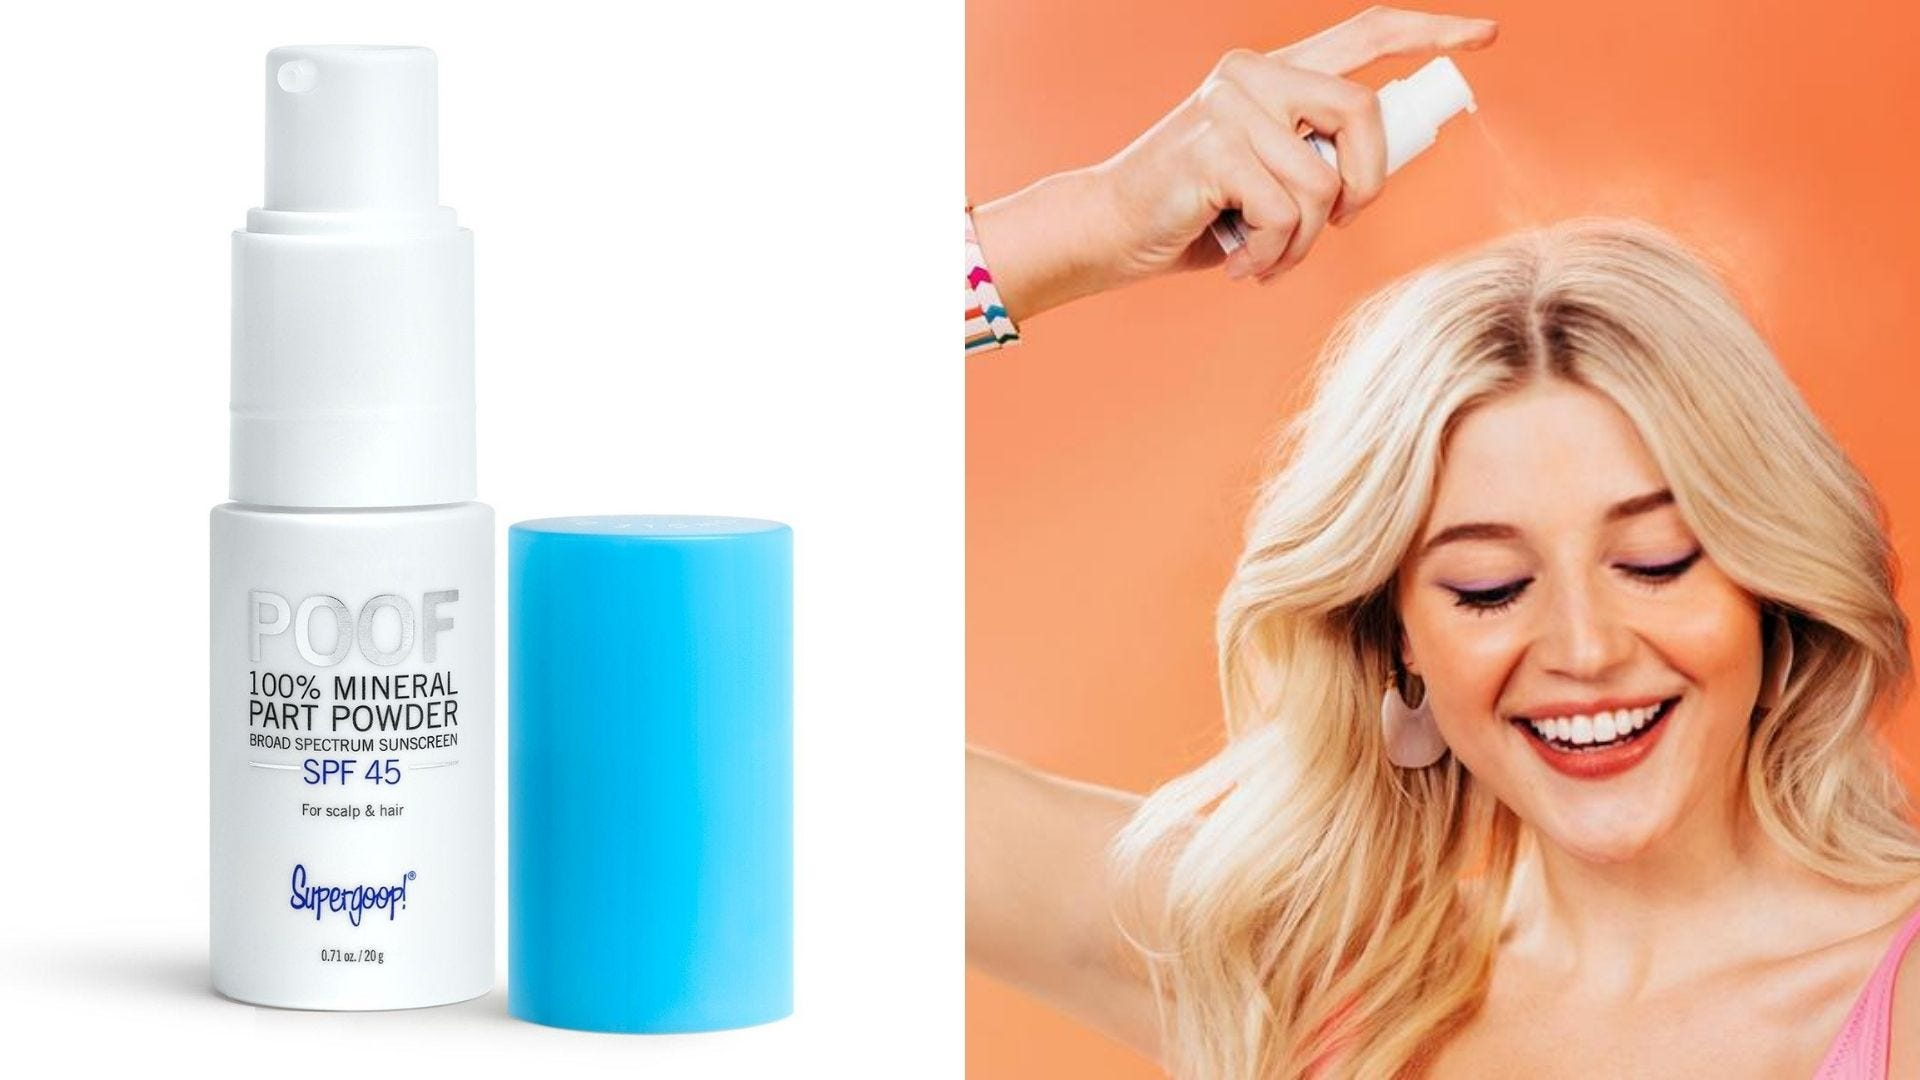 A blue and white bottle of powder sunscreen. A woman sprays it on her head.